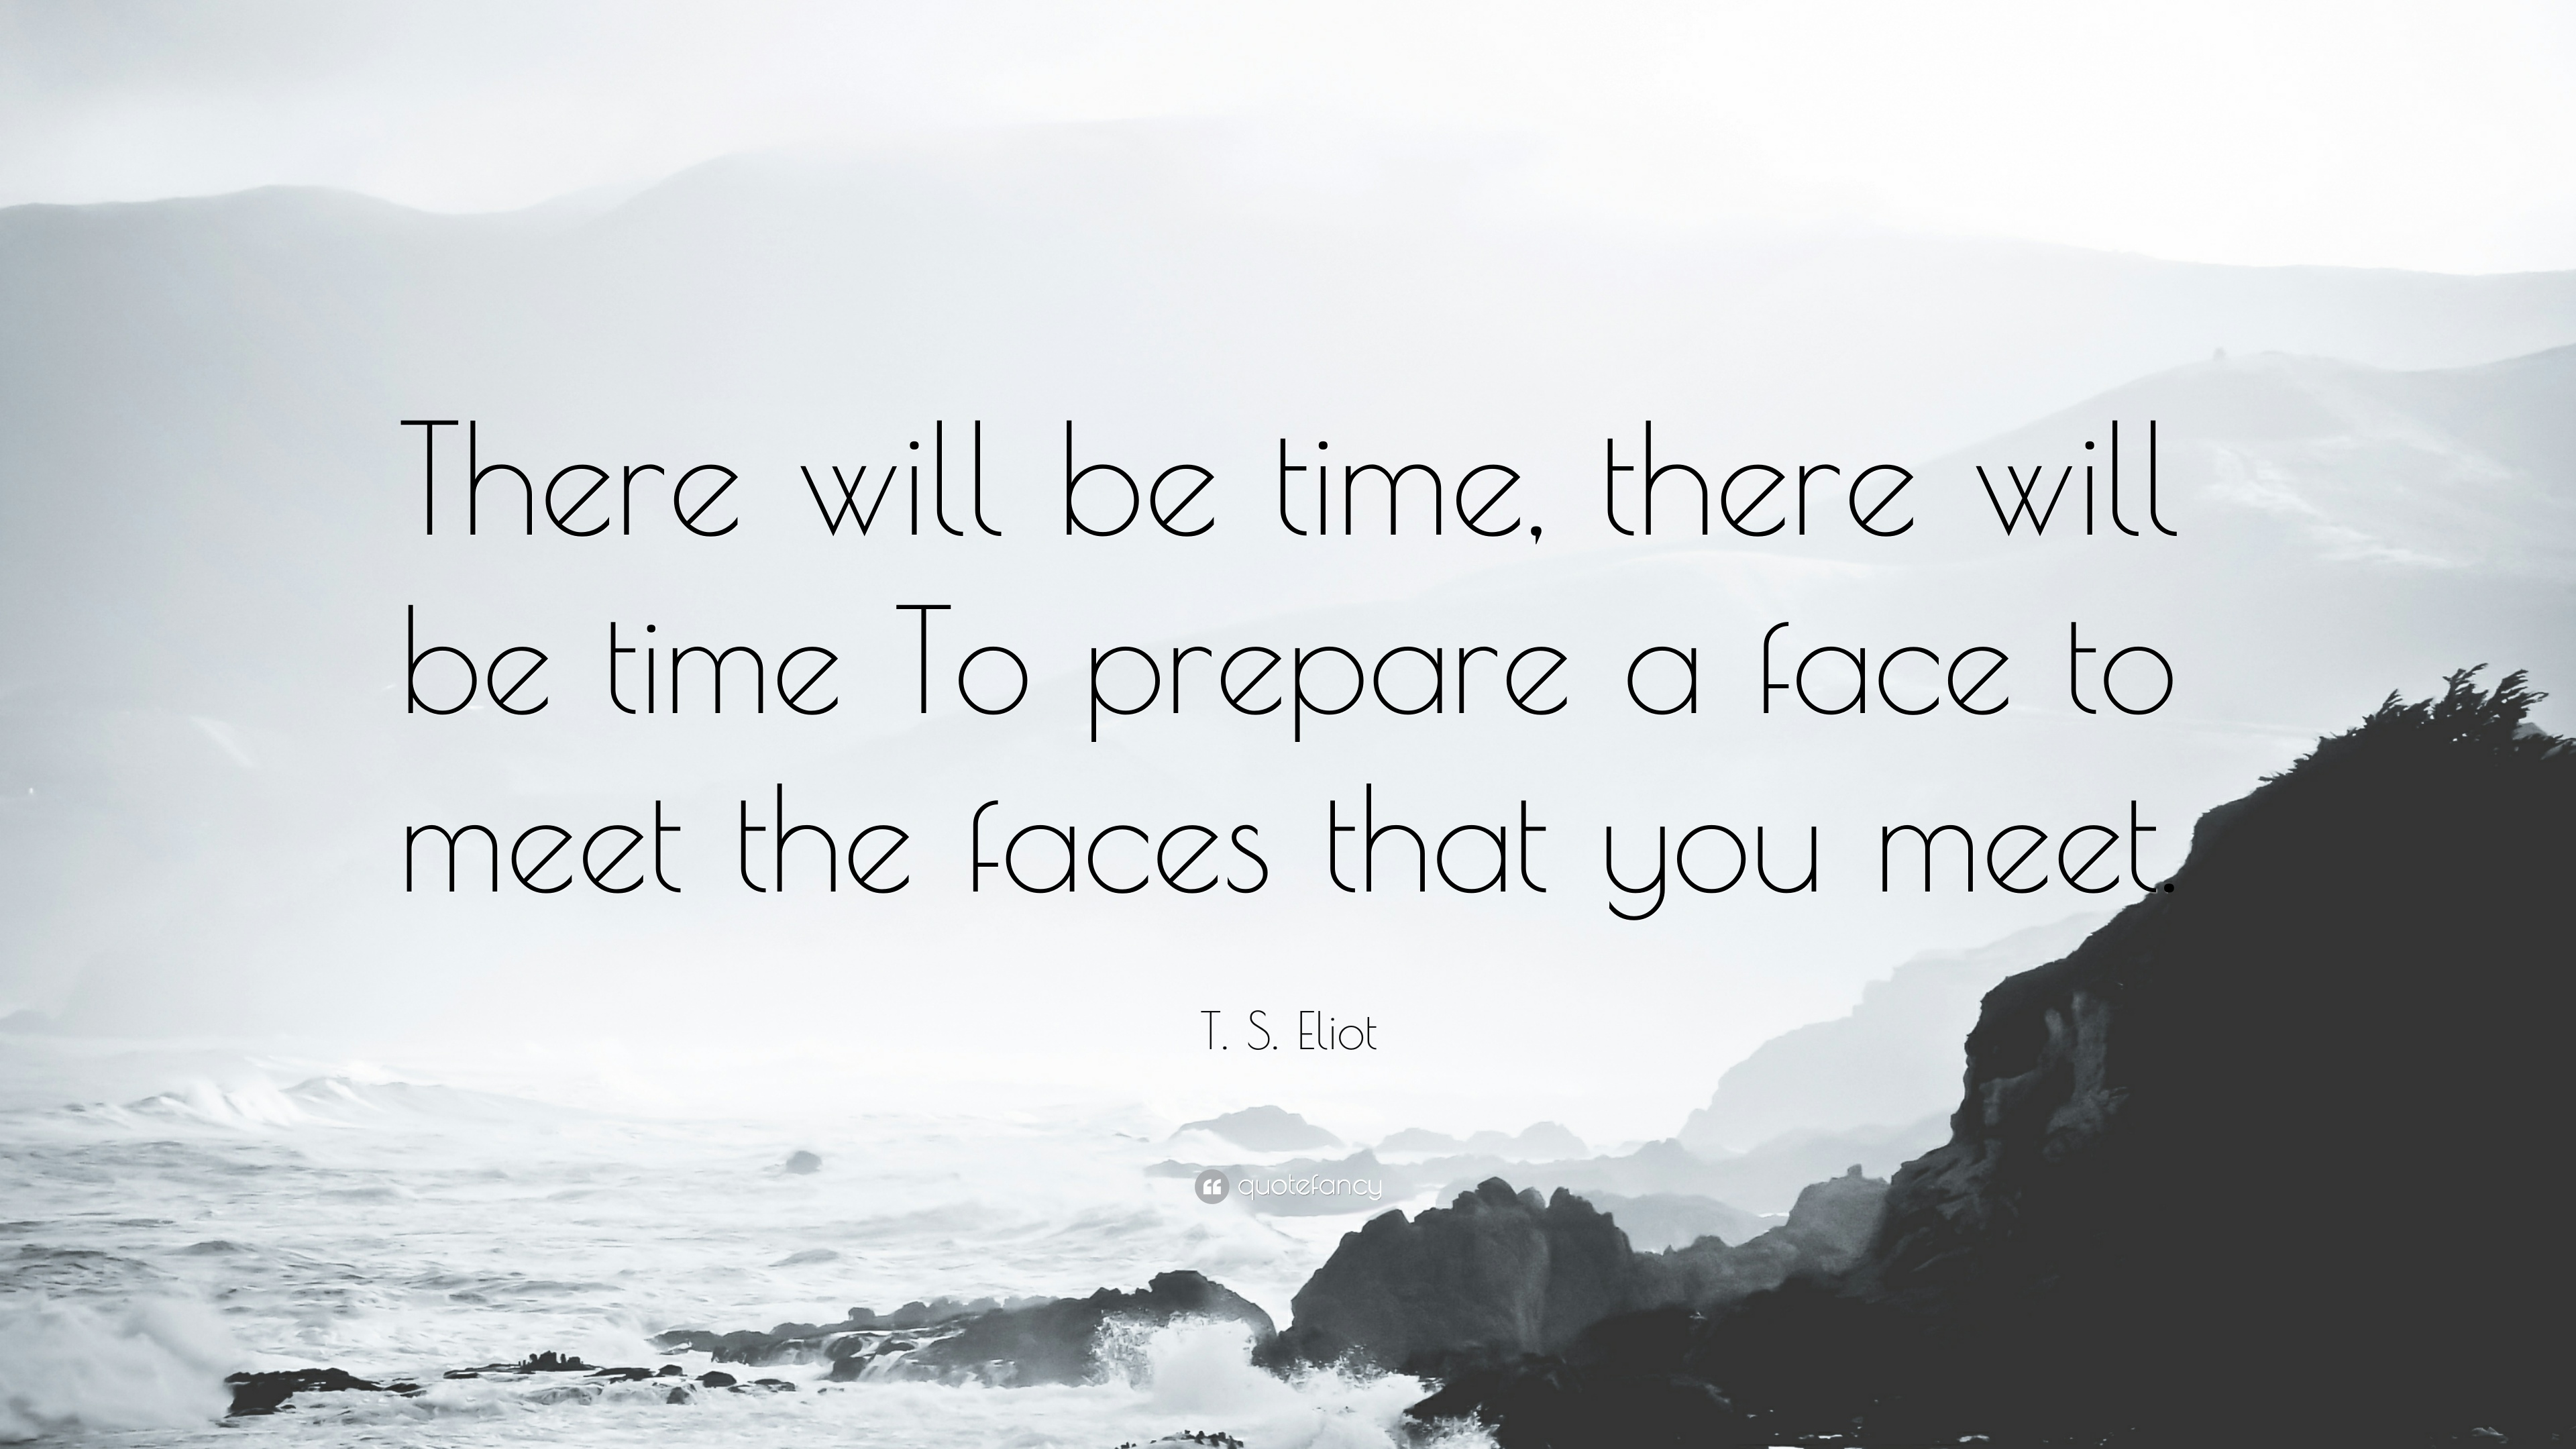 T S Eliot Quote There Will Be Time There Will Be Time To